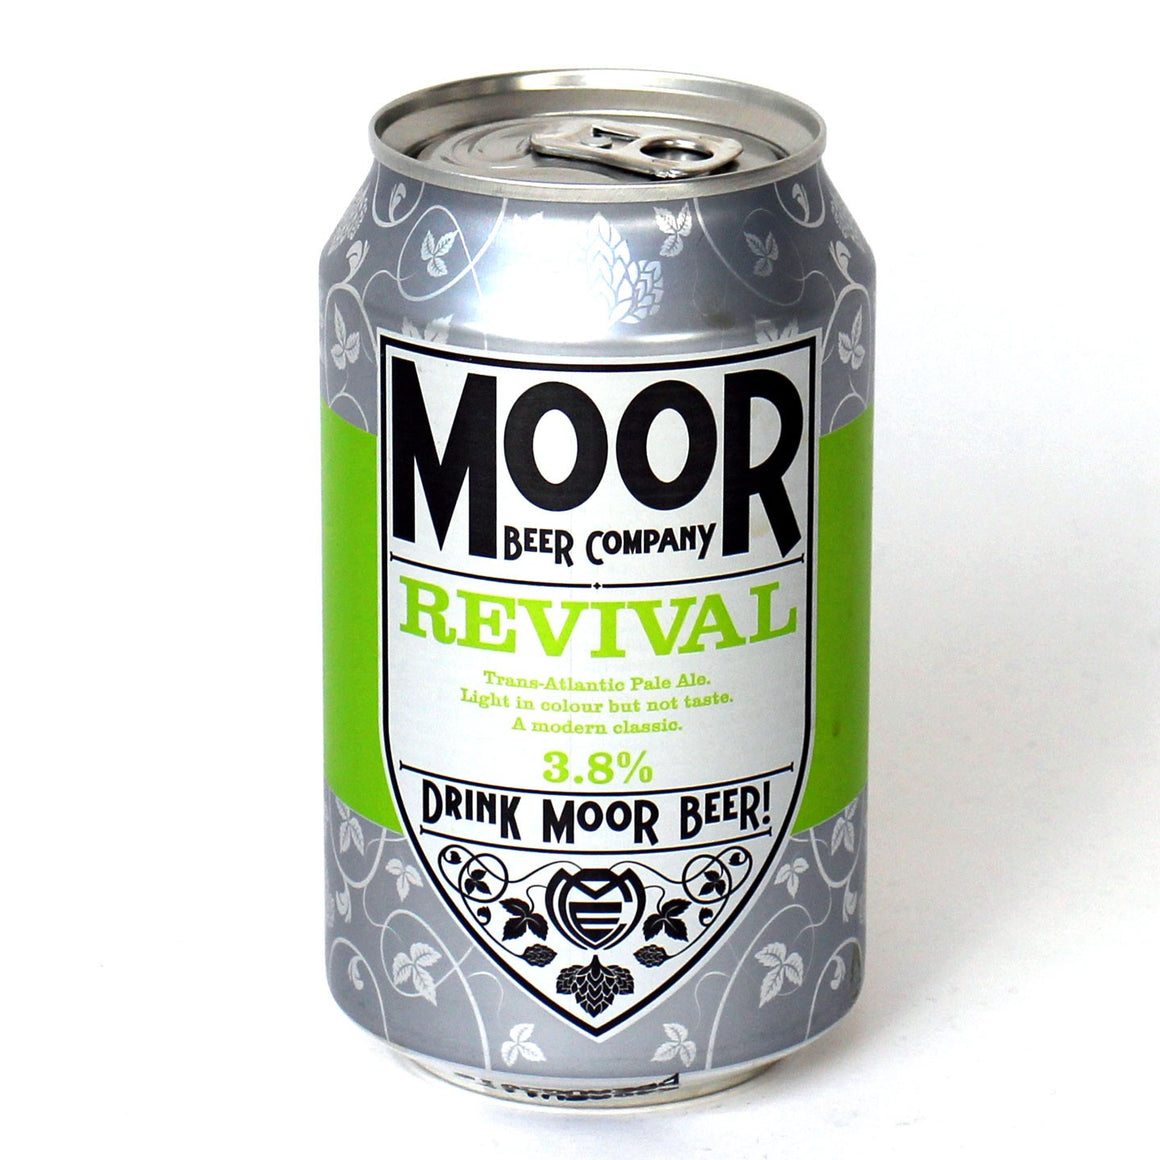 Moor Beer Company - Revival - Bitter - 330ml Can